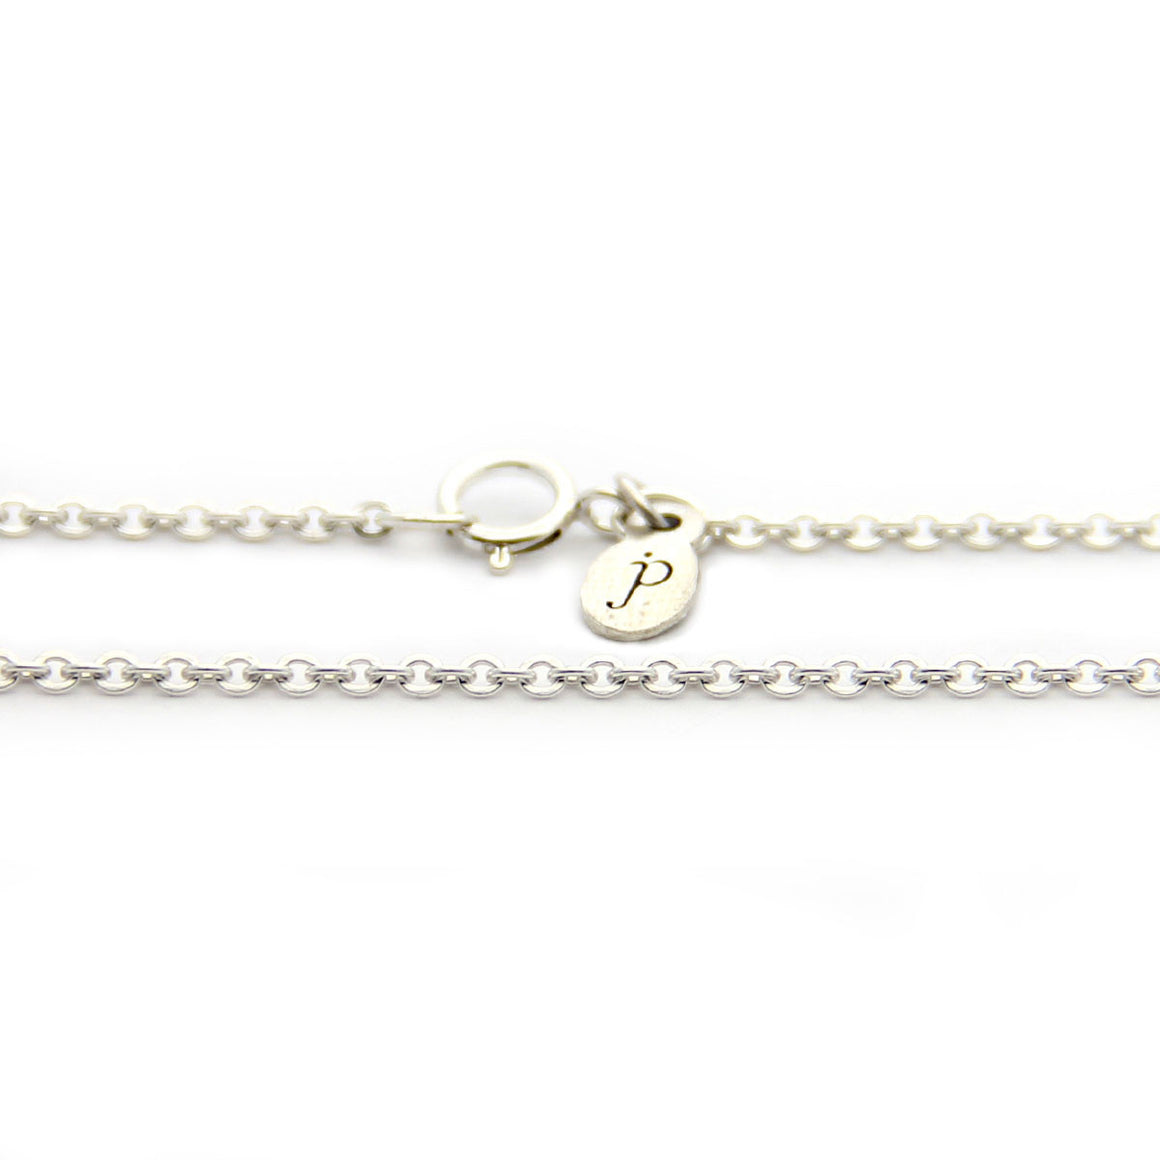 sterling silver cable chain necklace options, cable chain necklace add on, design your own necklace, jenny present®